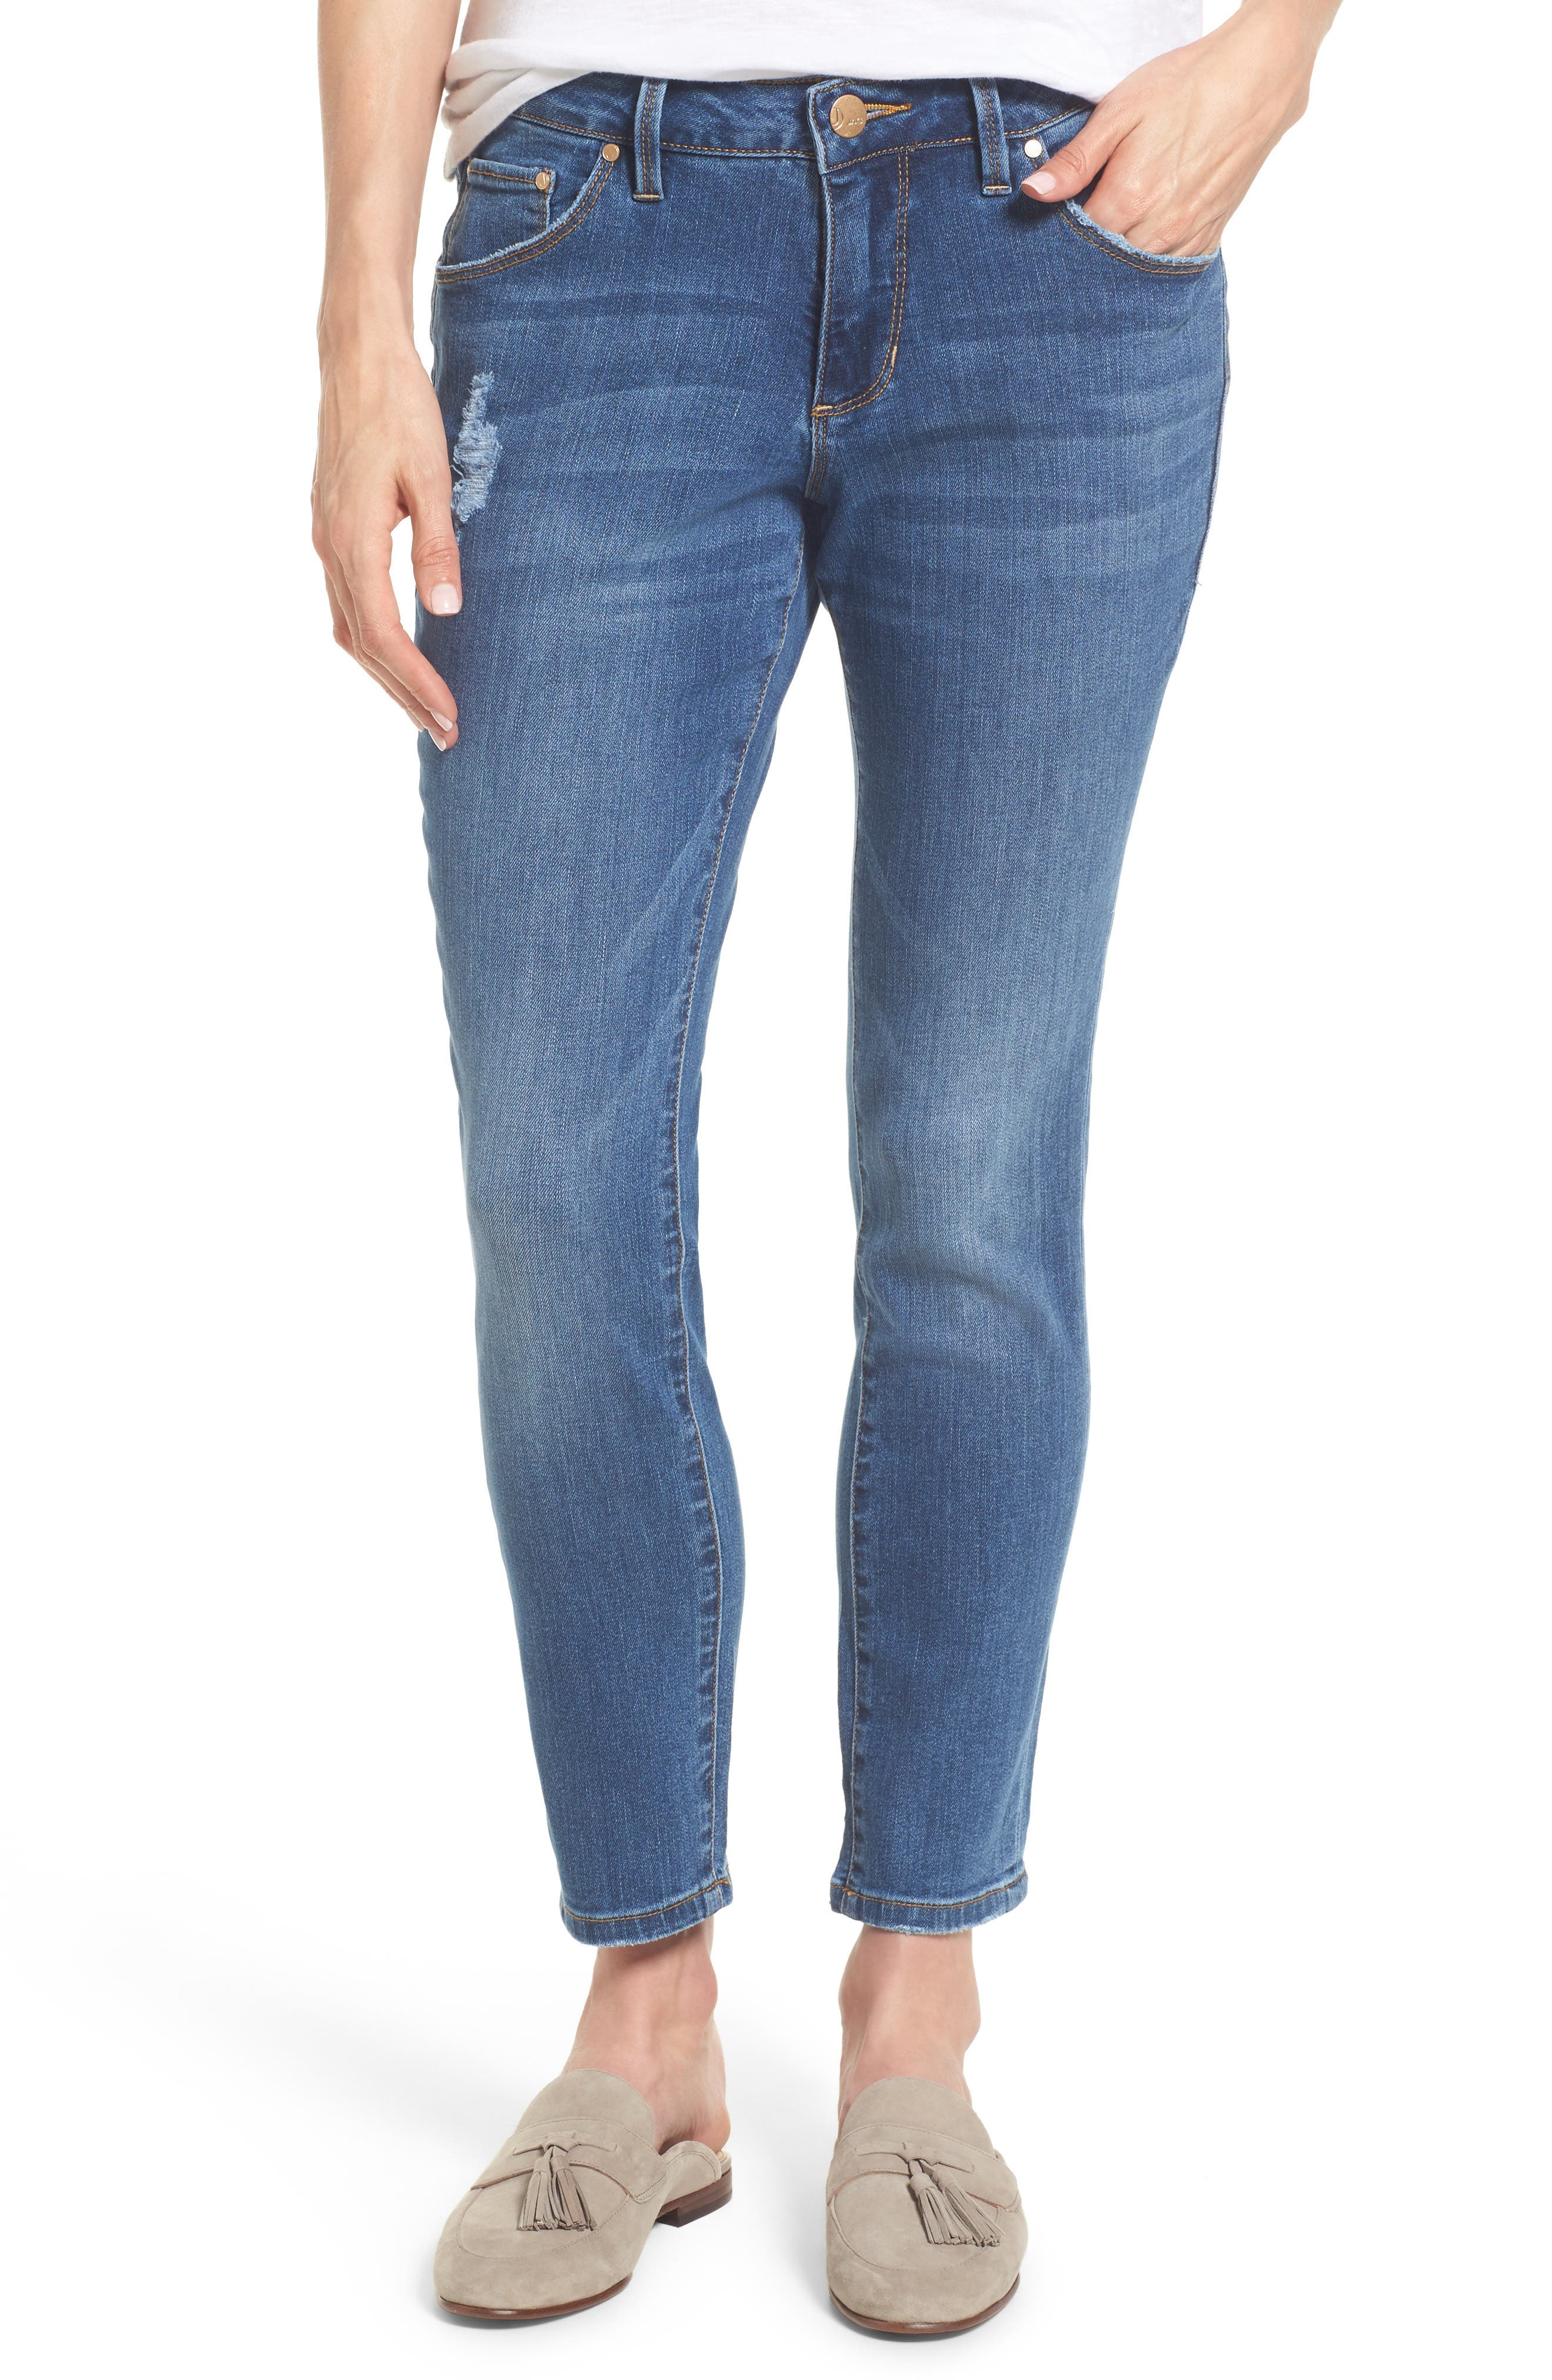 Mera Skinny Ankle Jeans,                         Main,                         color, Mineral Wash